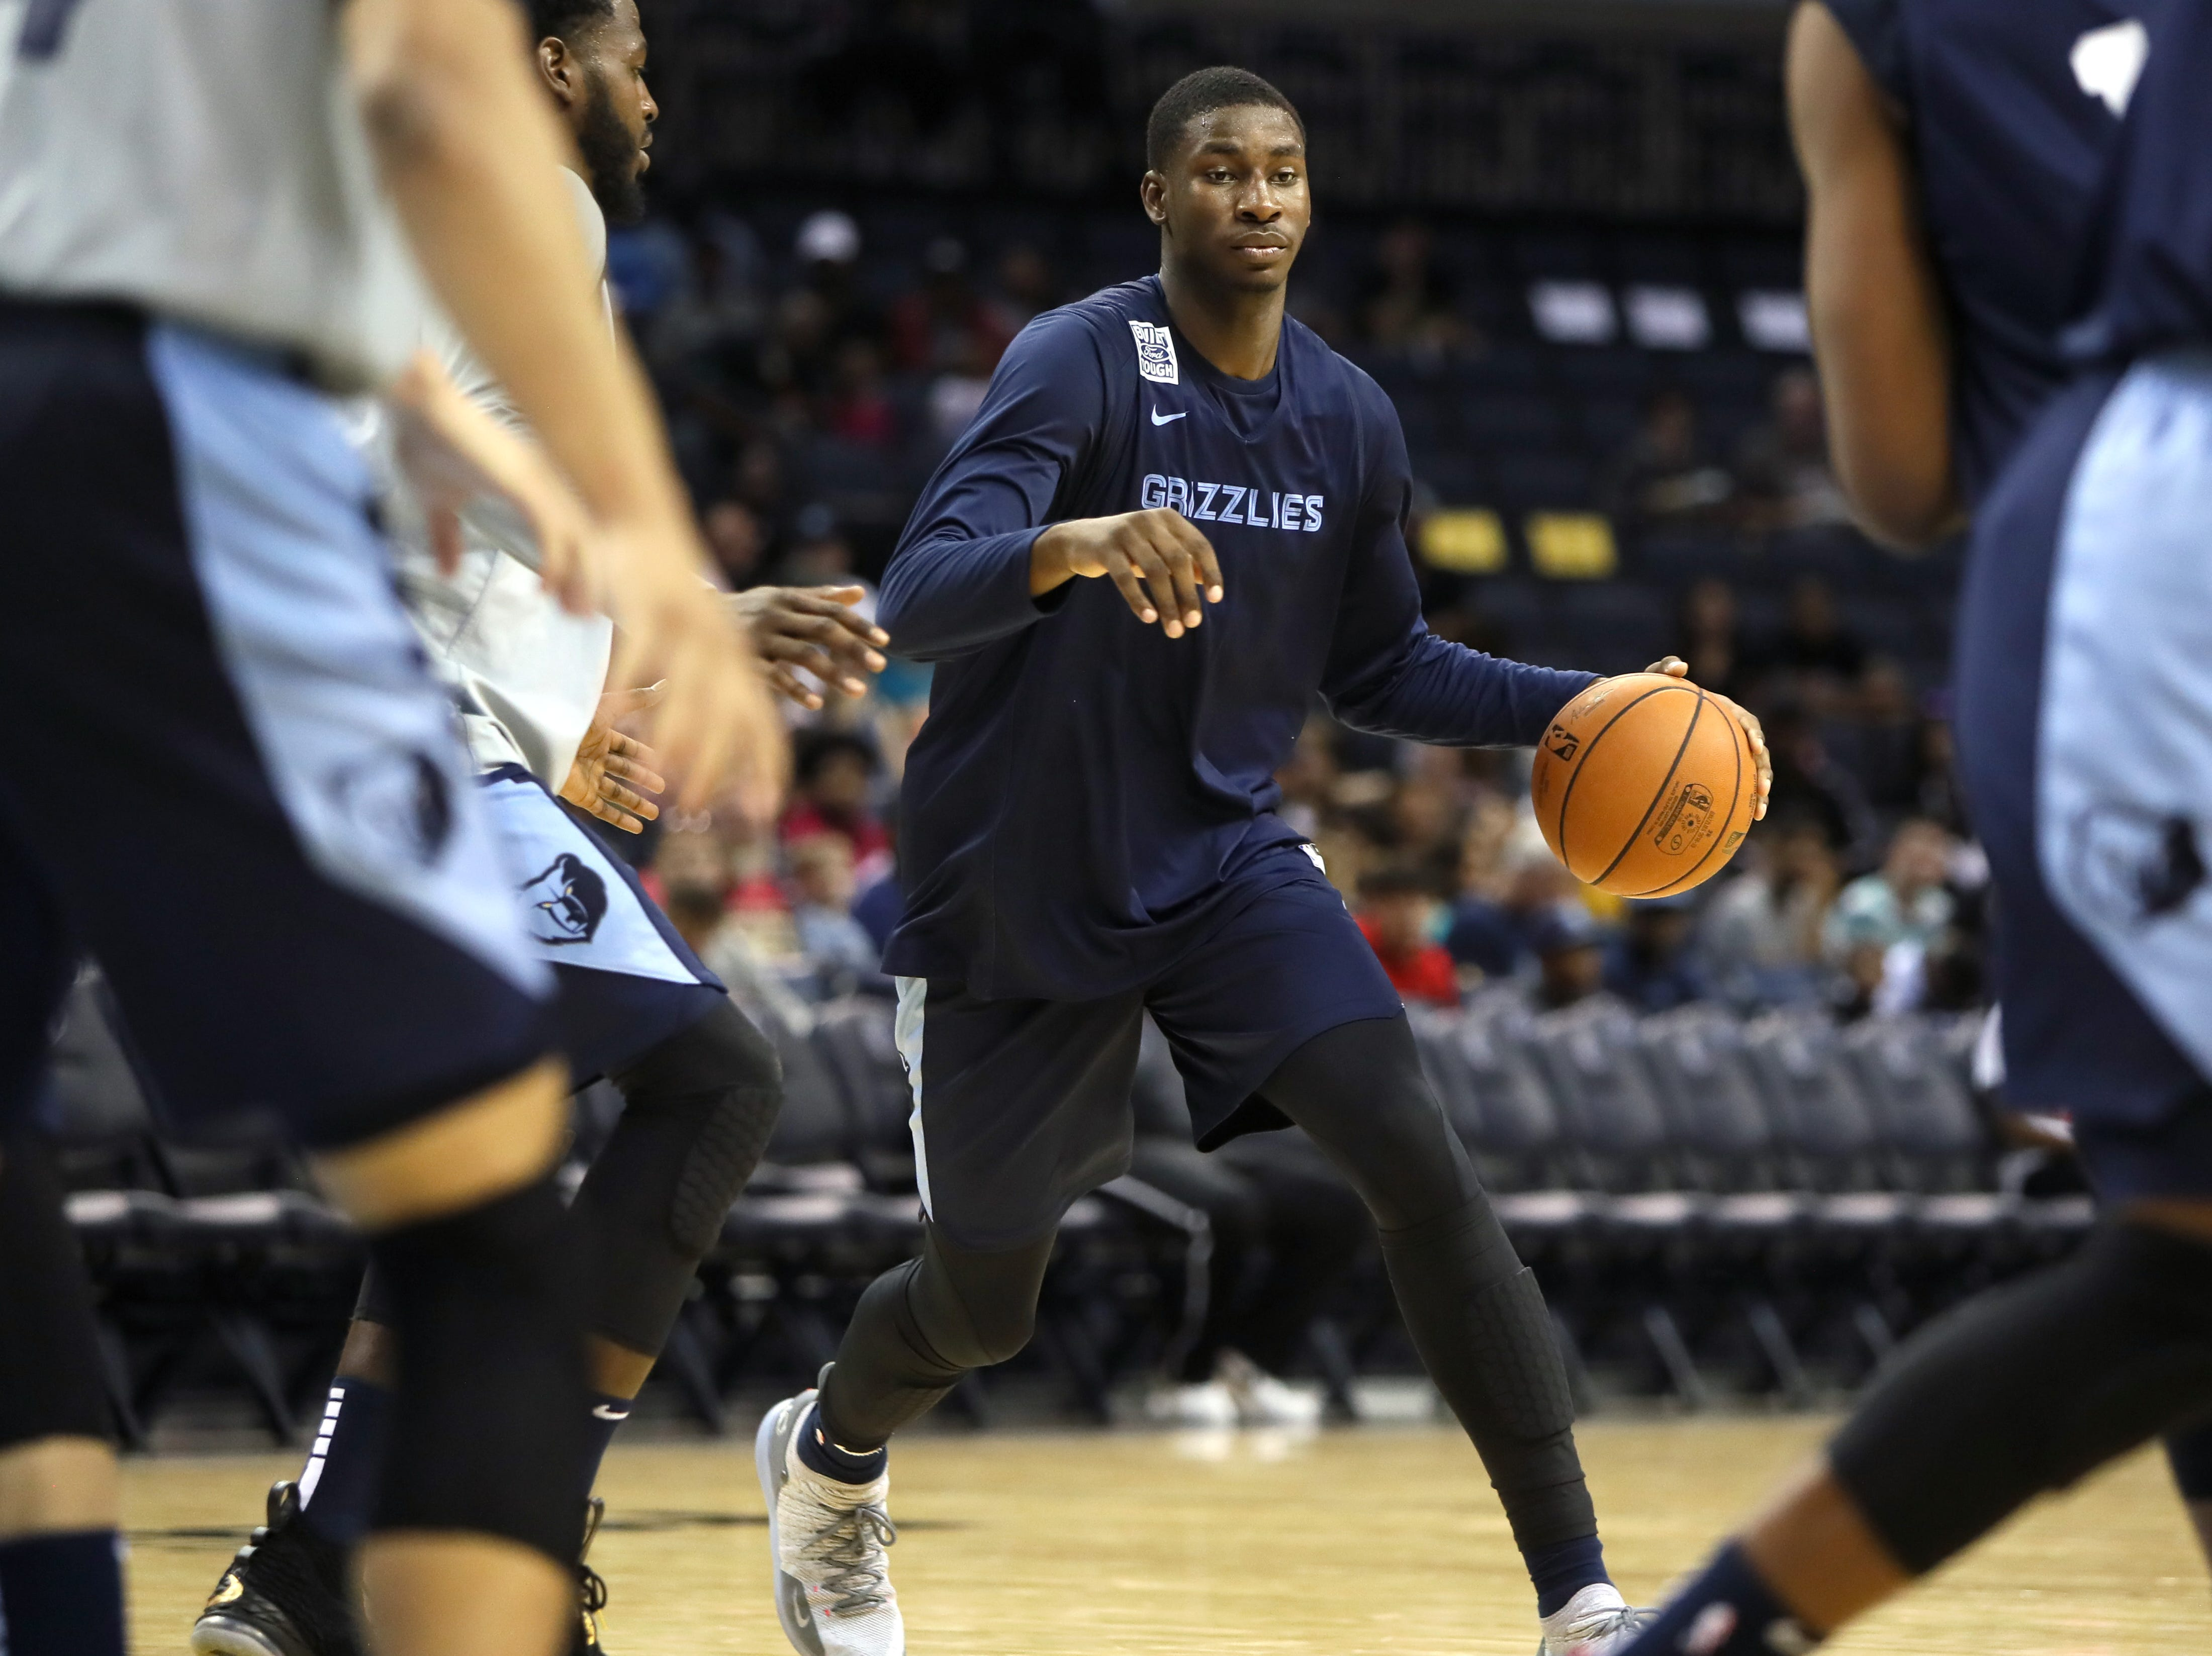 Jaren Jackson Jr. weaves through defenders during the Grizzlies open practice and scrimmage for fans at the FedExForum on Saturday, Sept. 29, 2018.